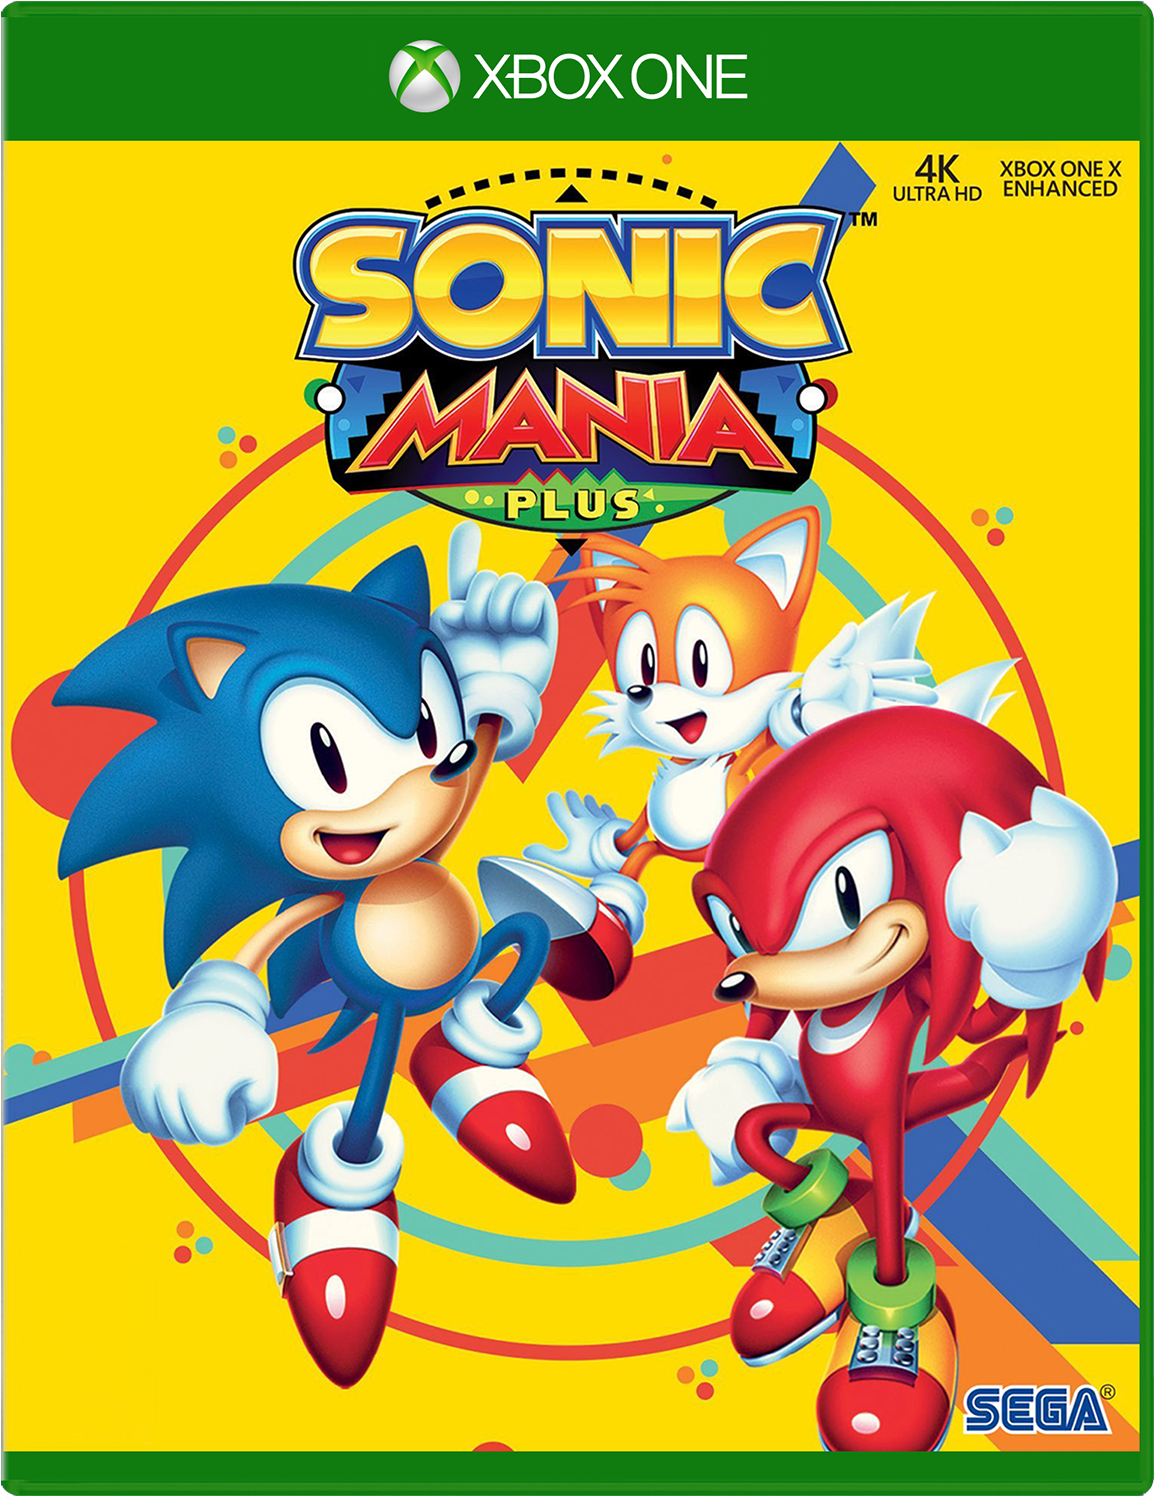 Buy Sonic Mania Plus for Xbox One - Microsoft Store